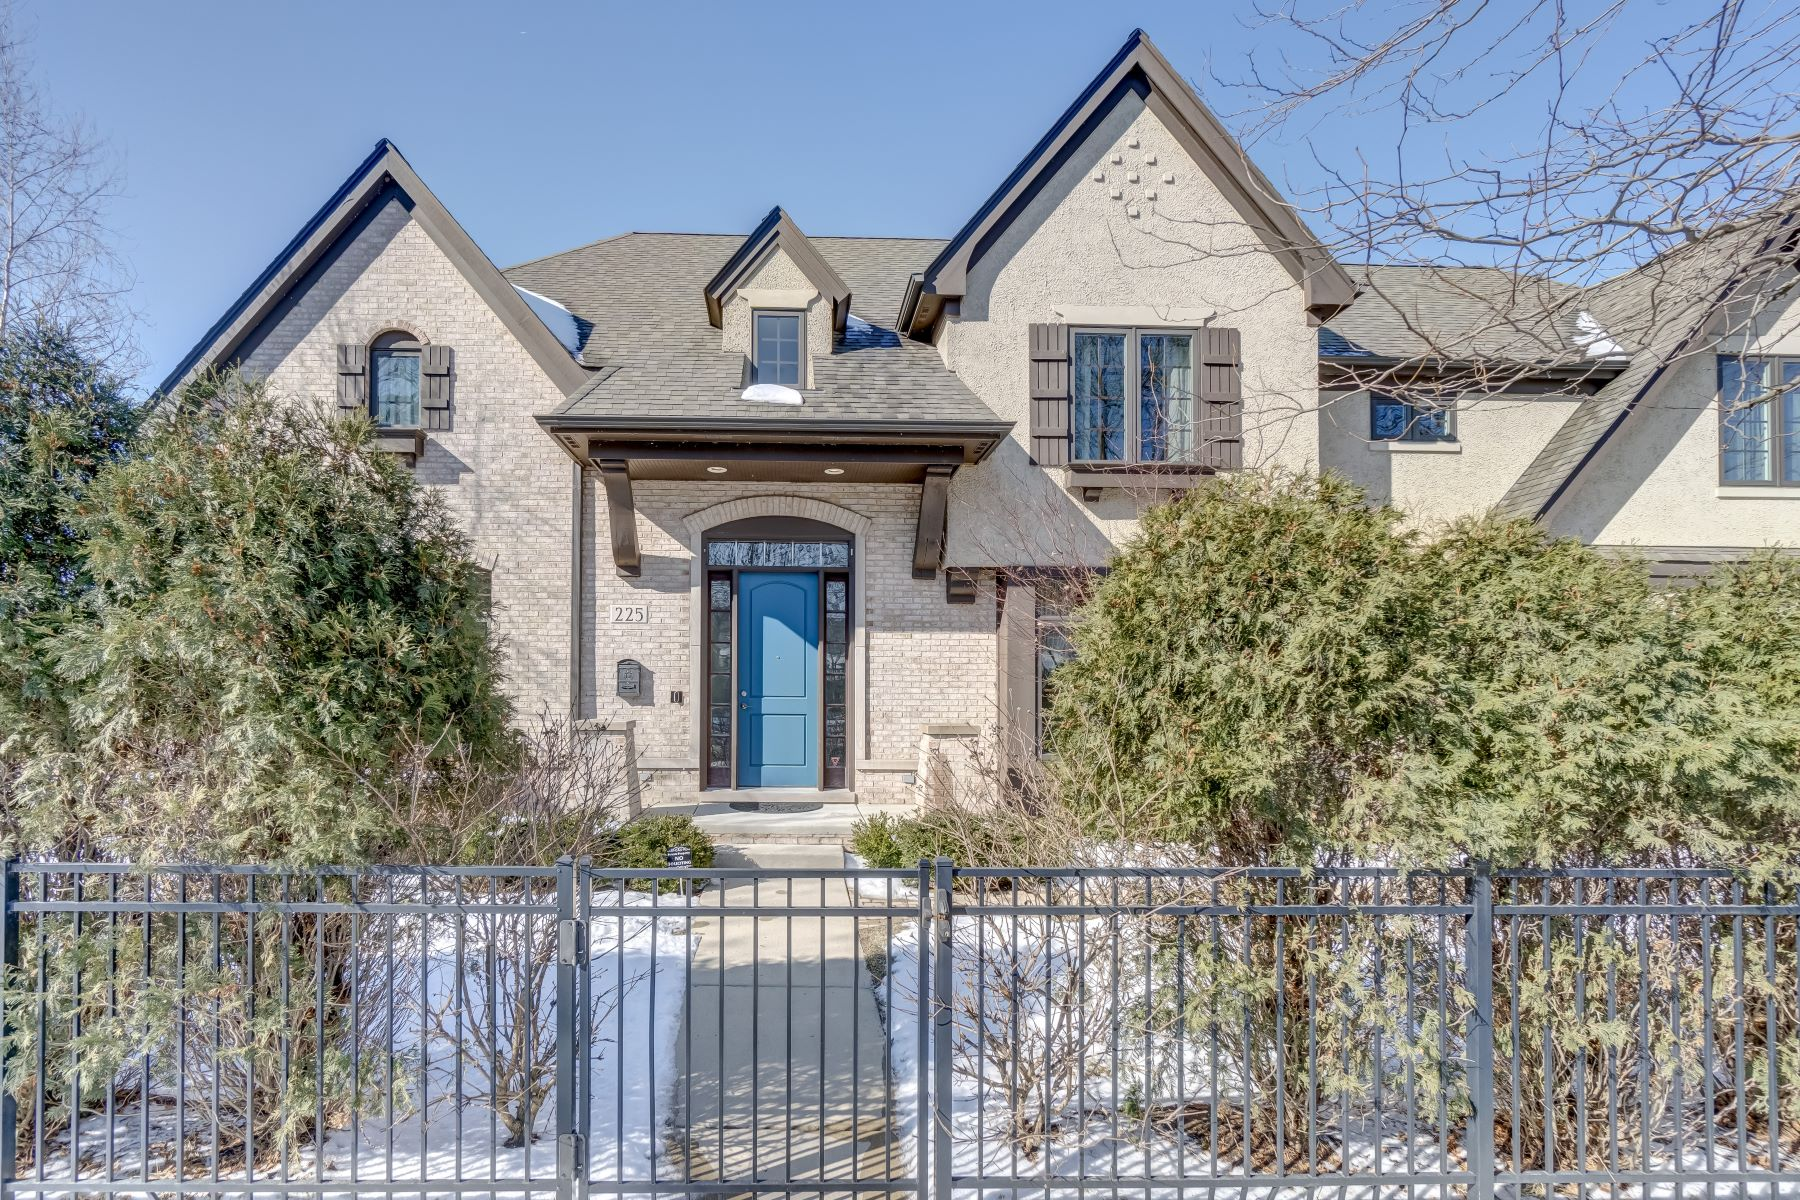 Single Family Home for Active at 225 Sheridan Road, Wilmette, IL 60091 225 Sheridan Road Wilmette, Illinois 60091 United States